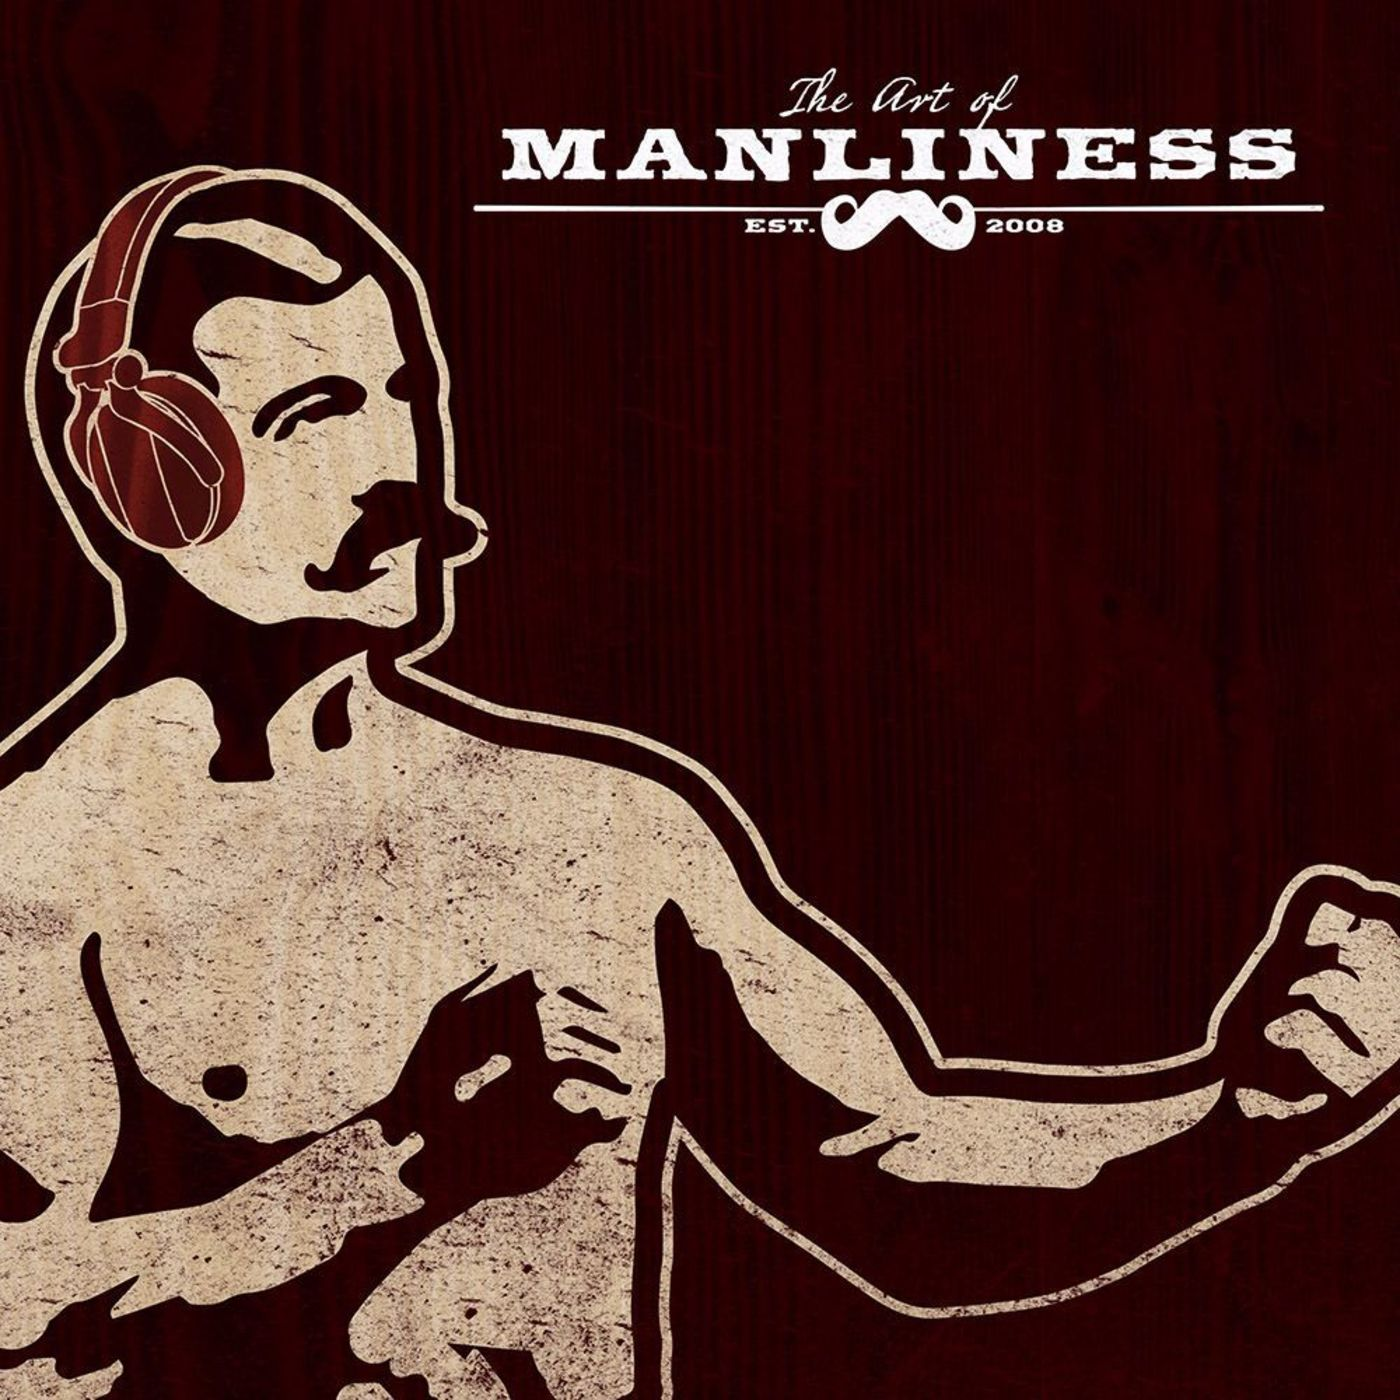 Art of manliness dating websites